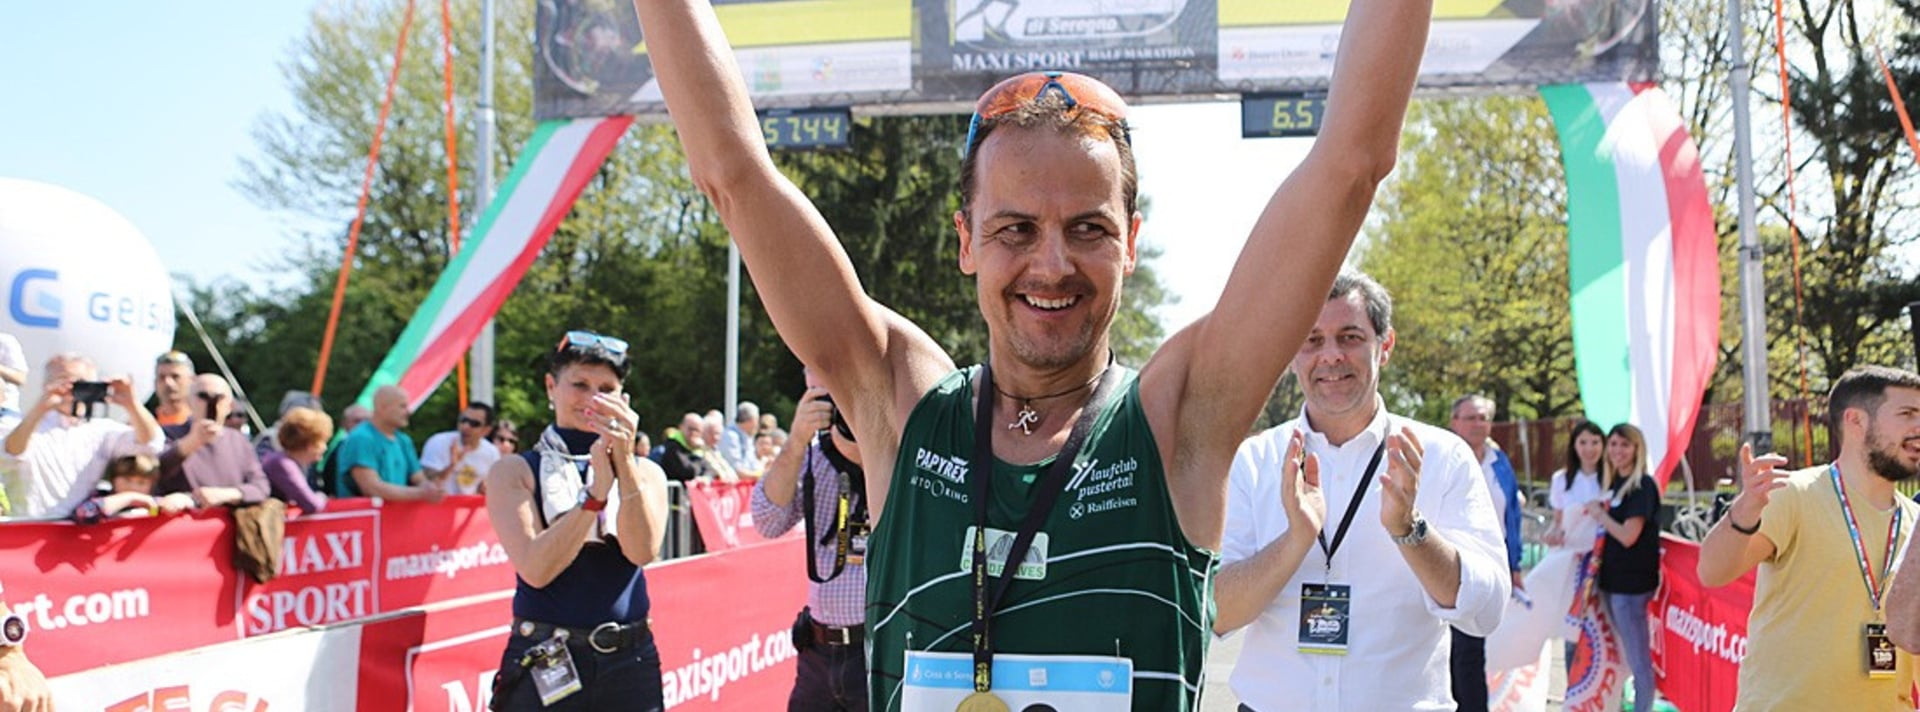 Hermann Achmüller is a true South Tyrolean running legend. He tells us why the Monte Pana is one of his favourite training areas.